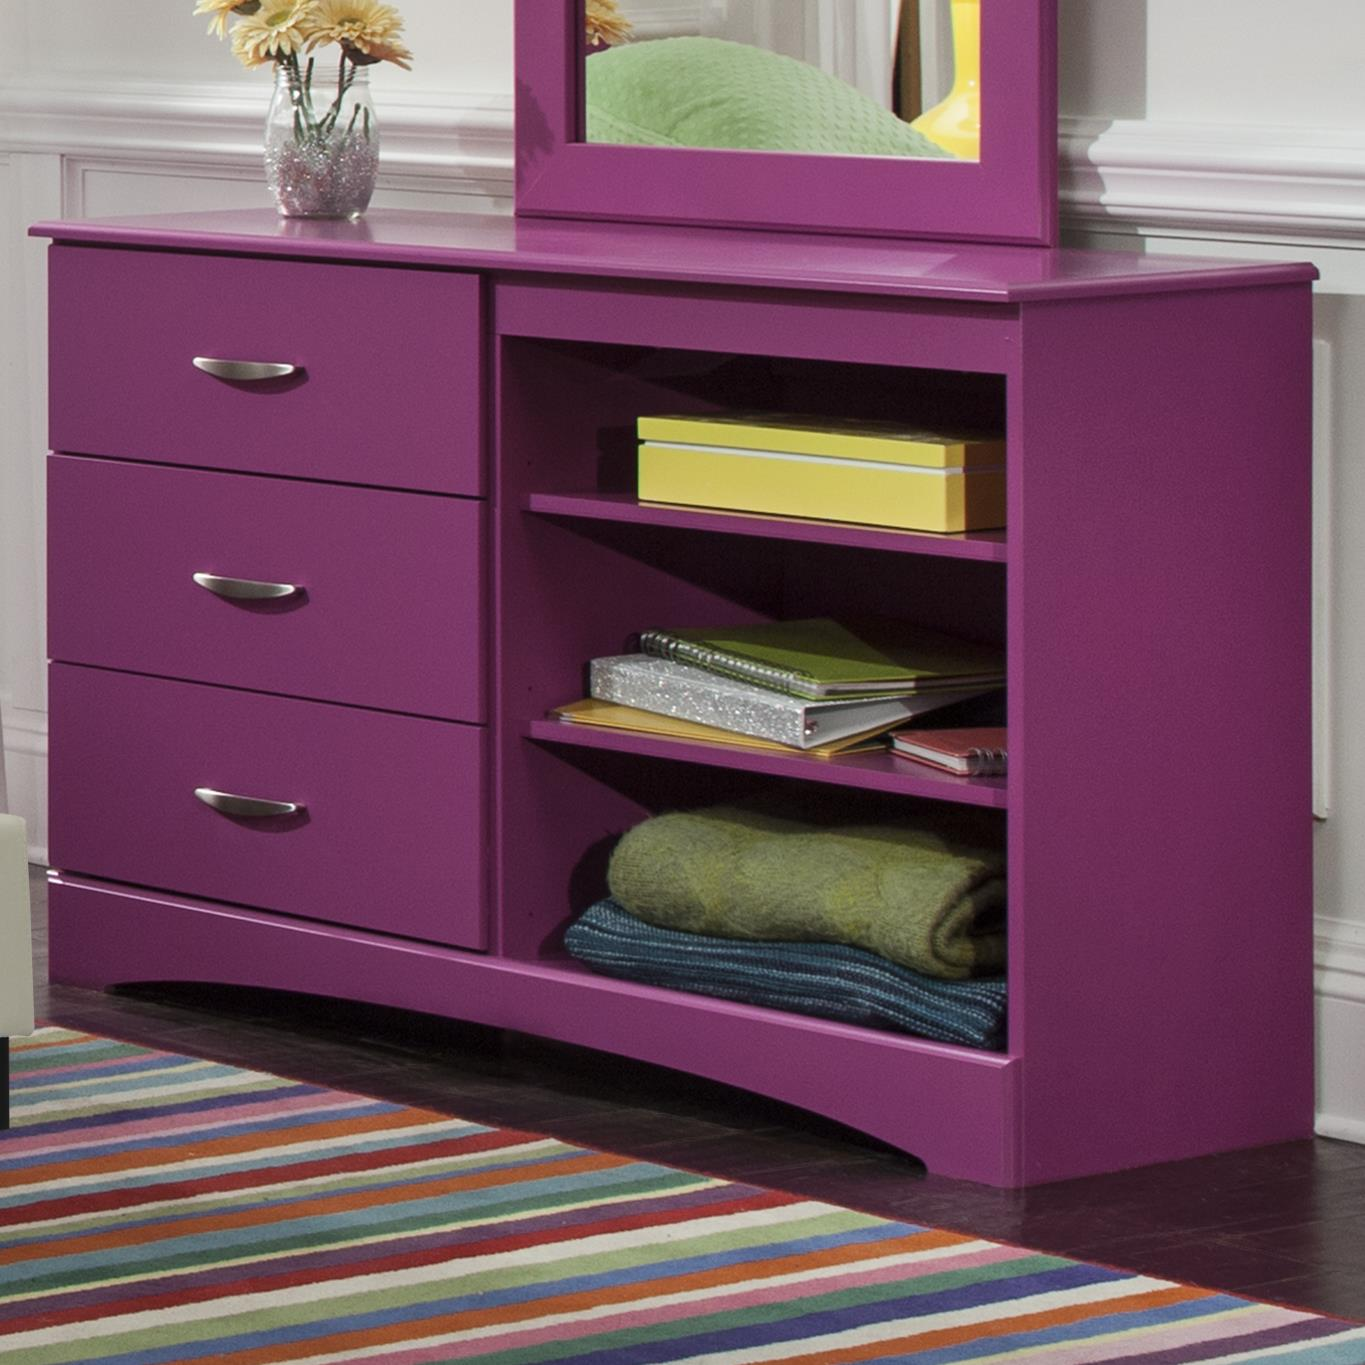 Kith Furniture 171 Raspberry Dresser - Item Number: 171-12